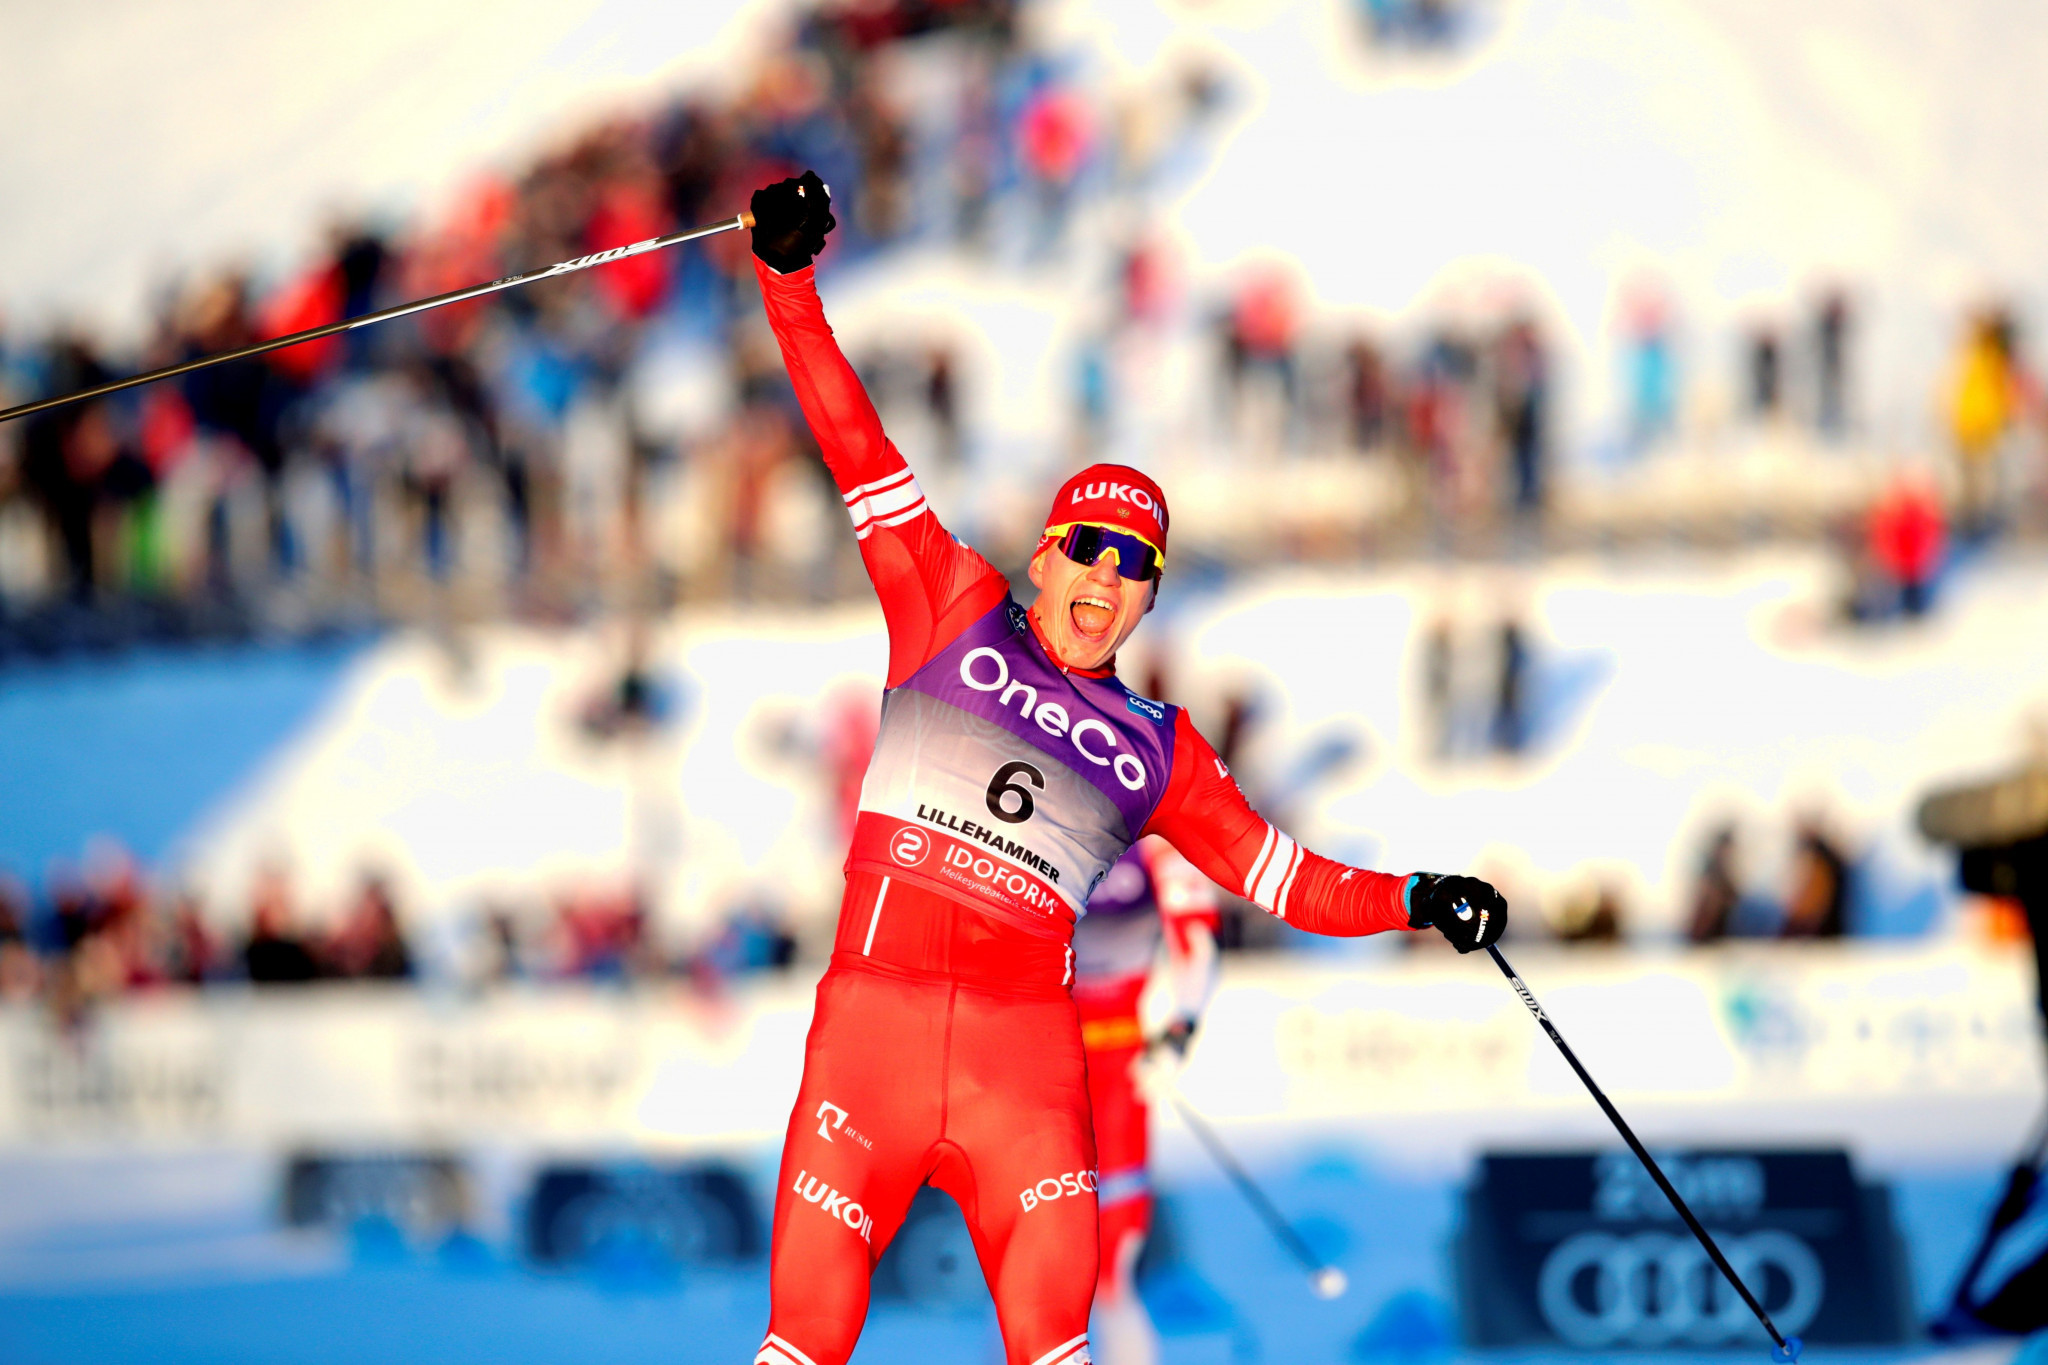 Bolshunov stuns Norwegians to claim FIS Cross-Country World Cup win in Lillehammer